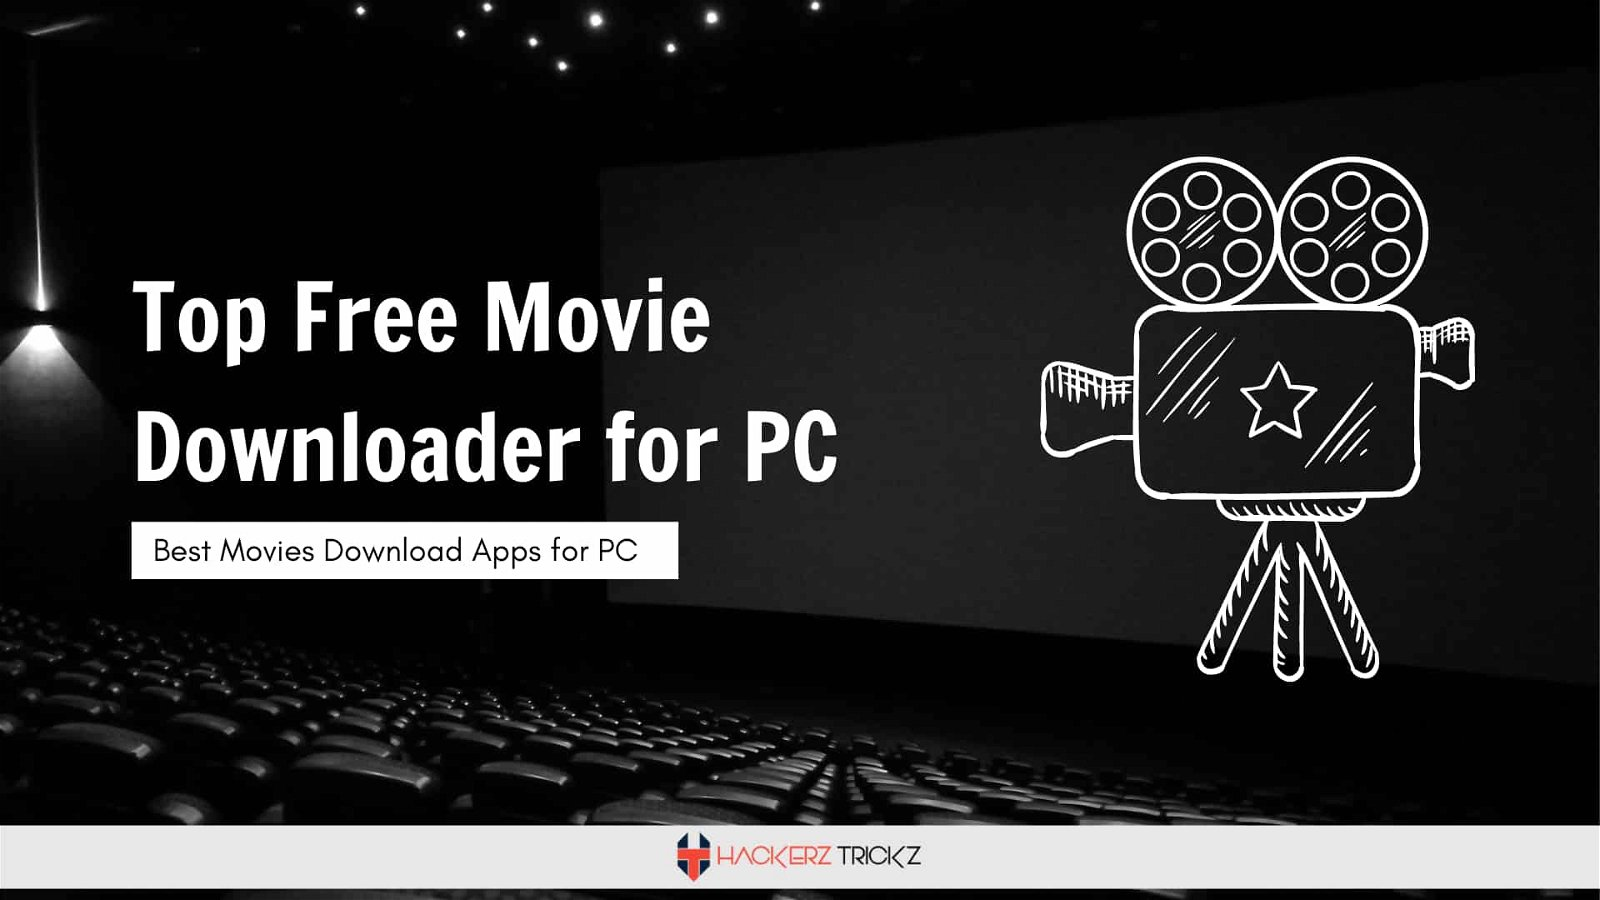 Top Free Movie Downloader for PC